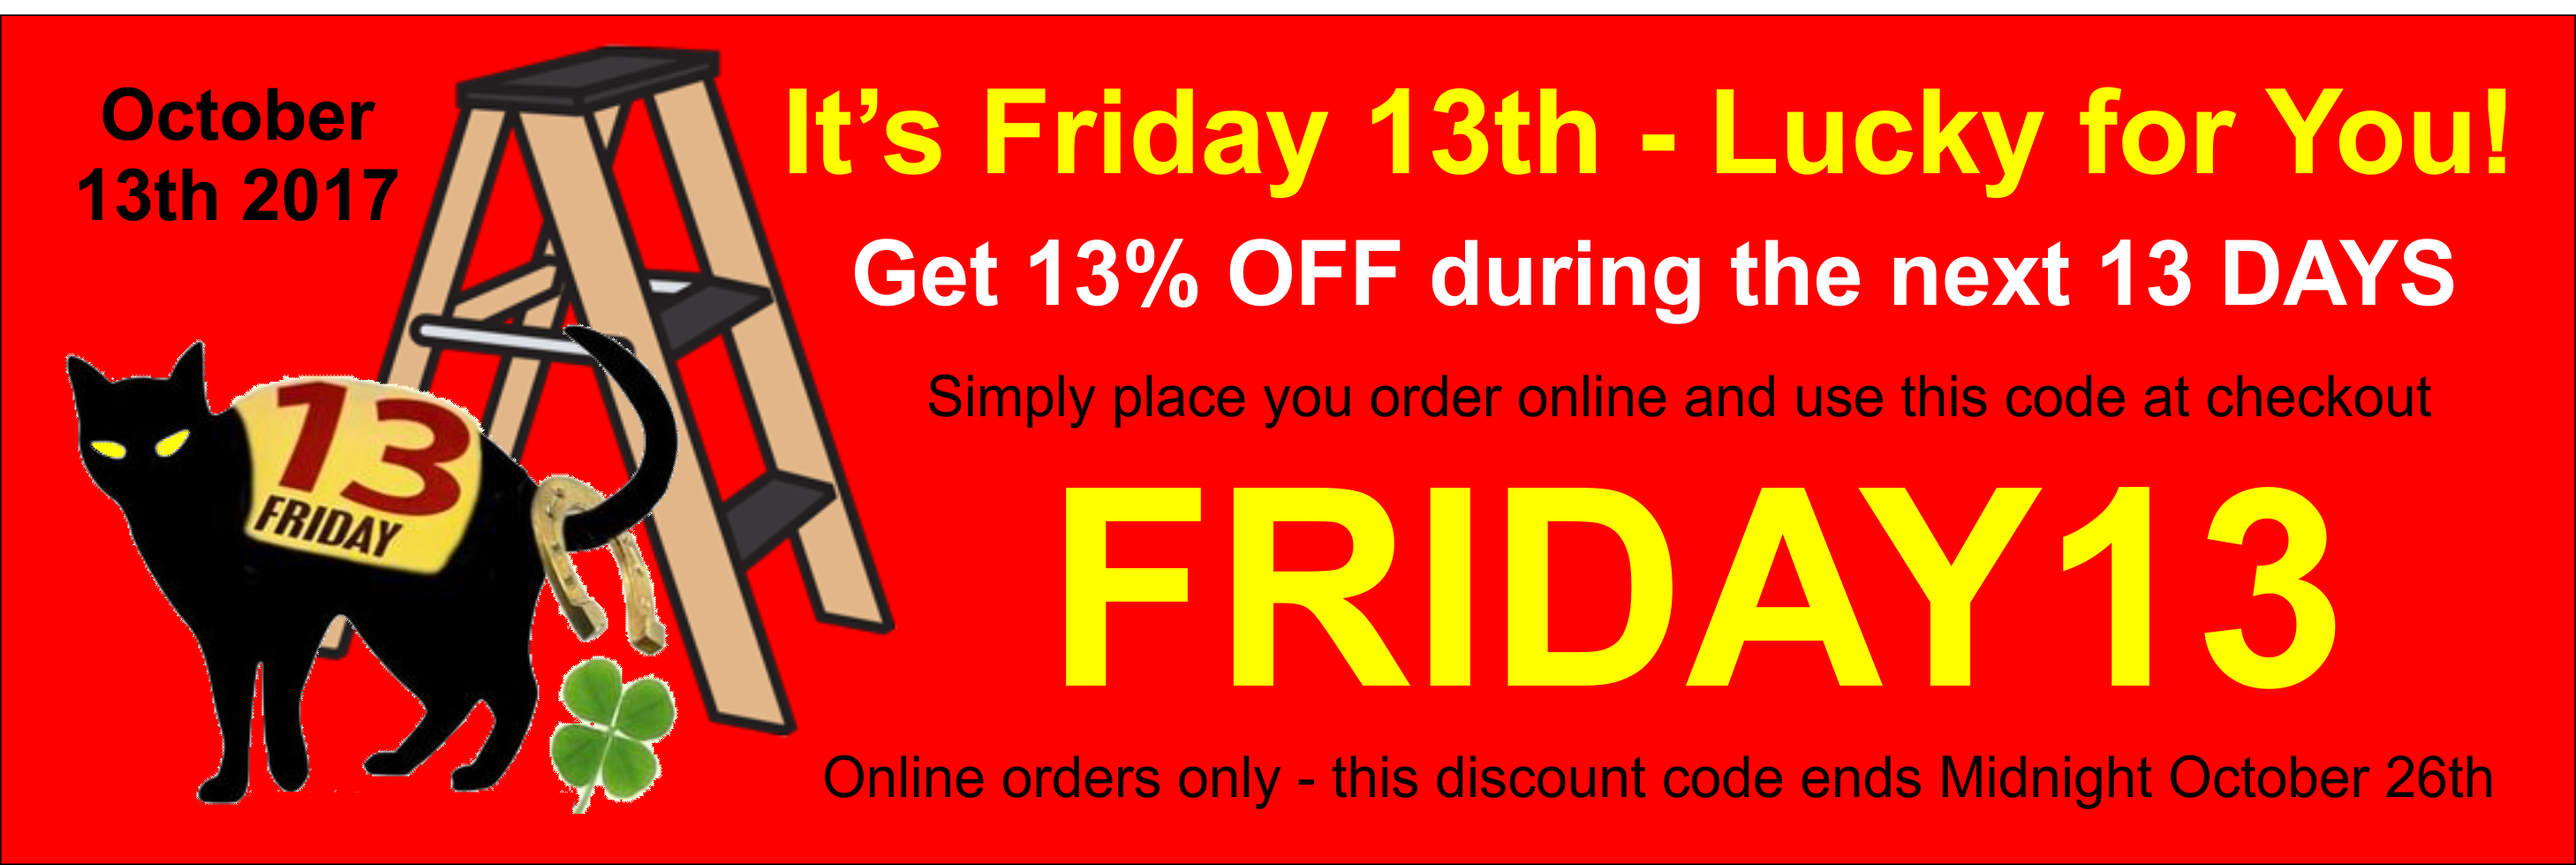 Friday 13th promo code